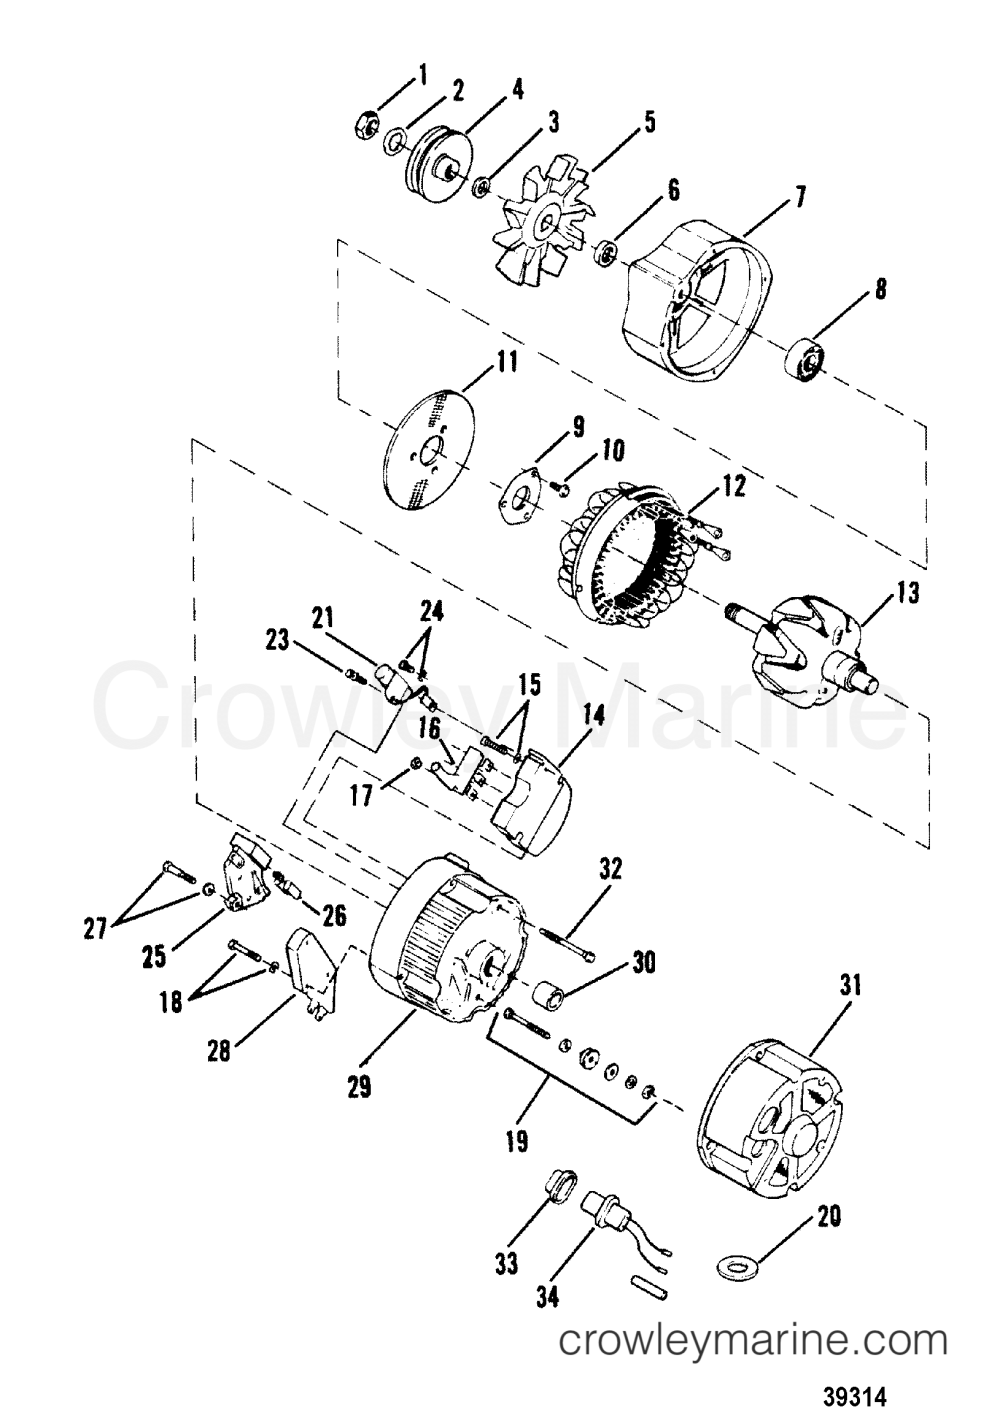 medium resolution of alternator delco remy 1105064 1988 mercruiser 3 0l delco remy alternator wiring schematic delco remy 22si alternator wiring diagram